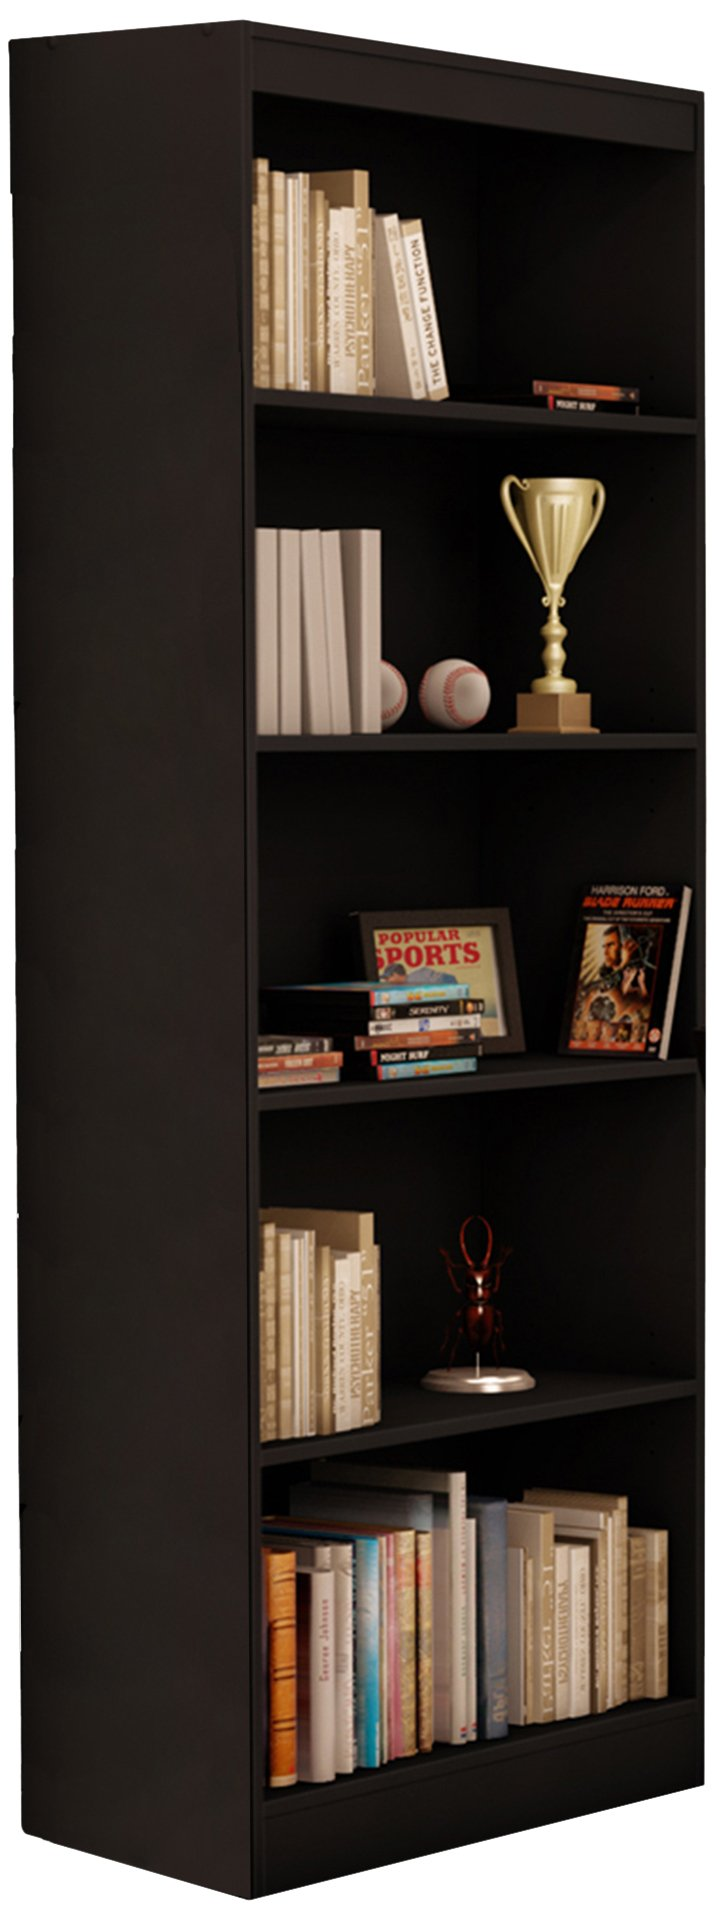 South Shore Jazz 5-Tier Open Bookcase, 72-Inch, Black